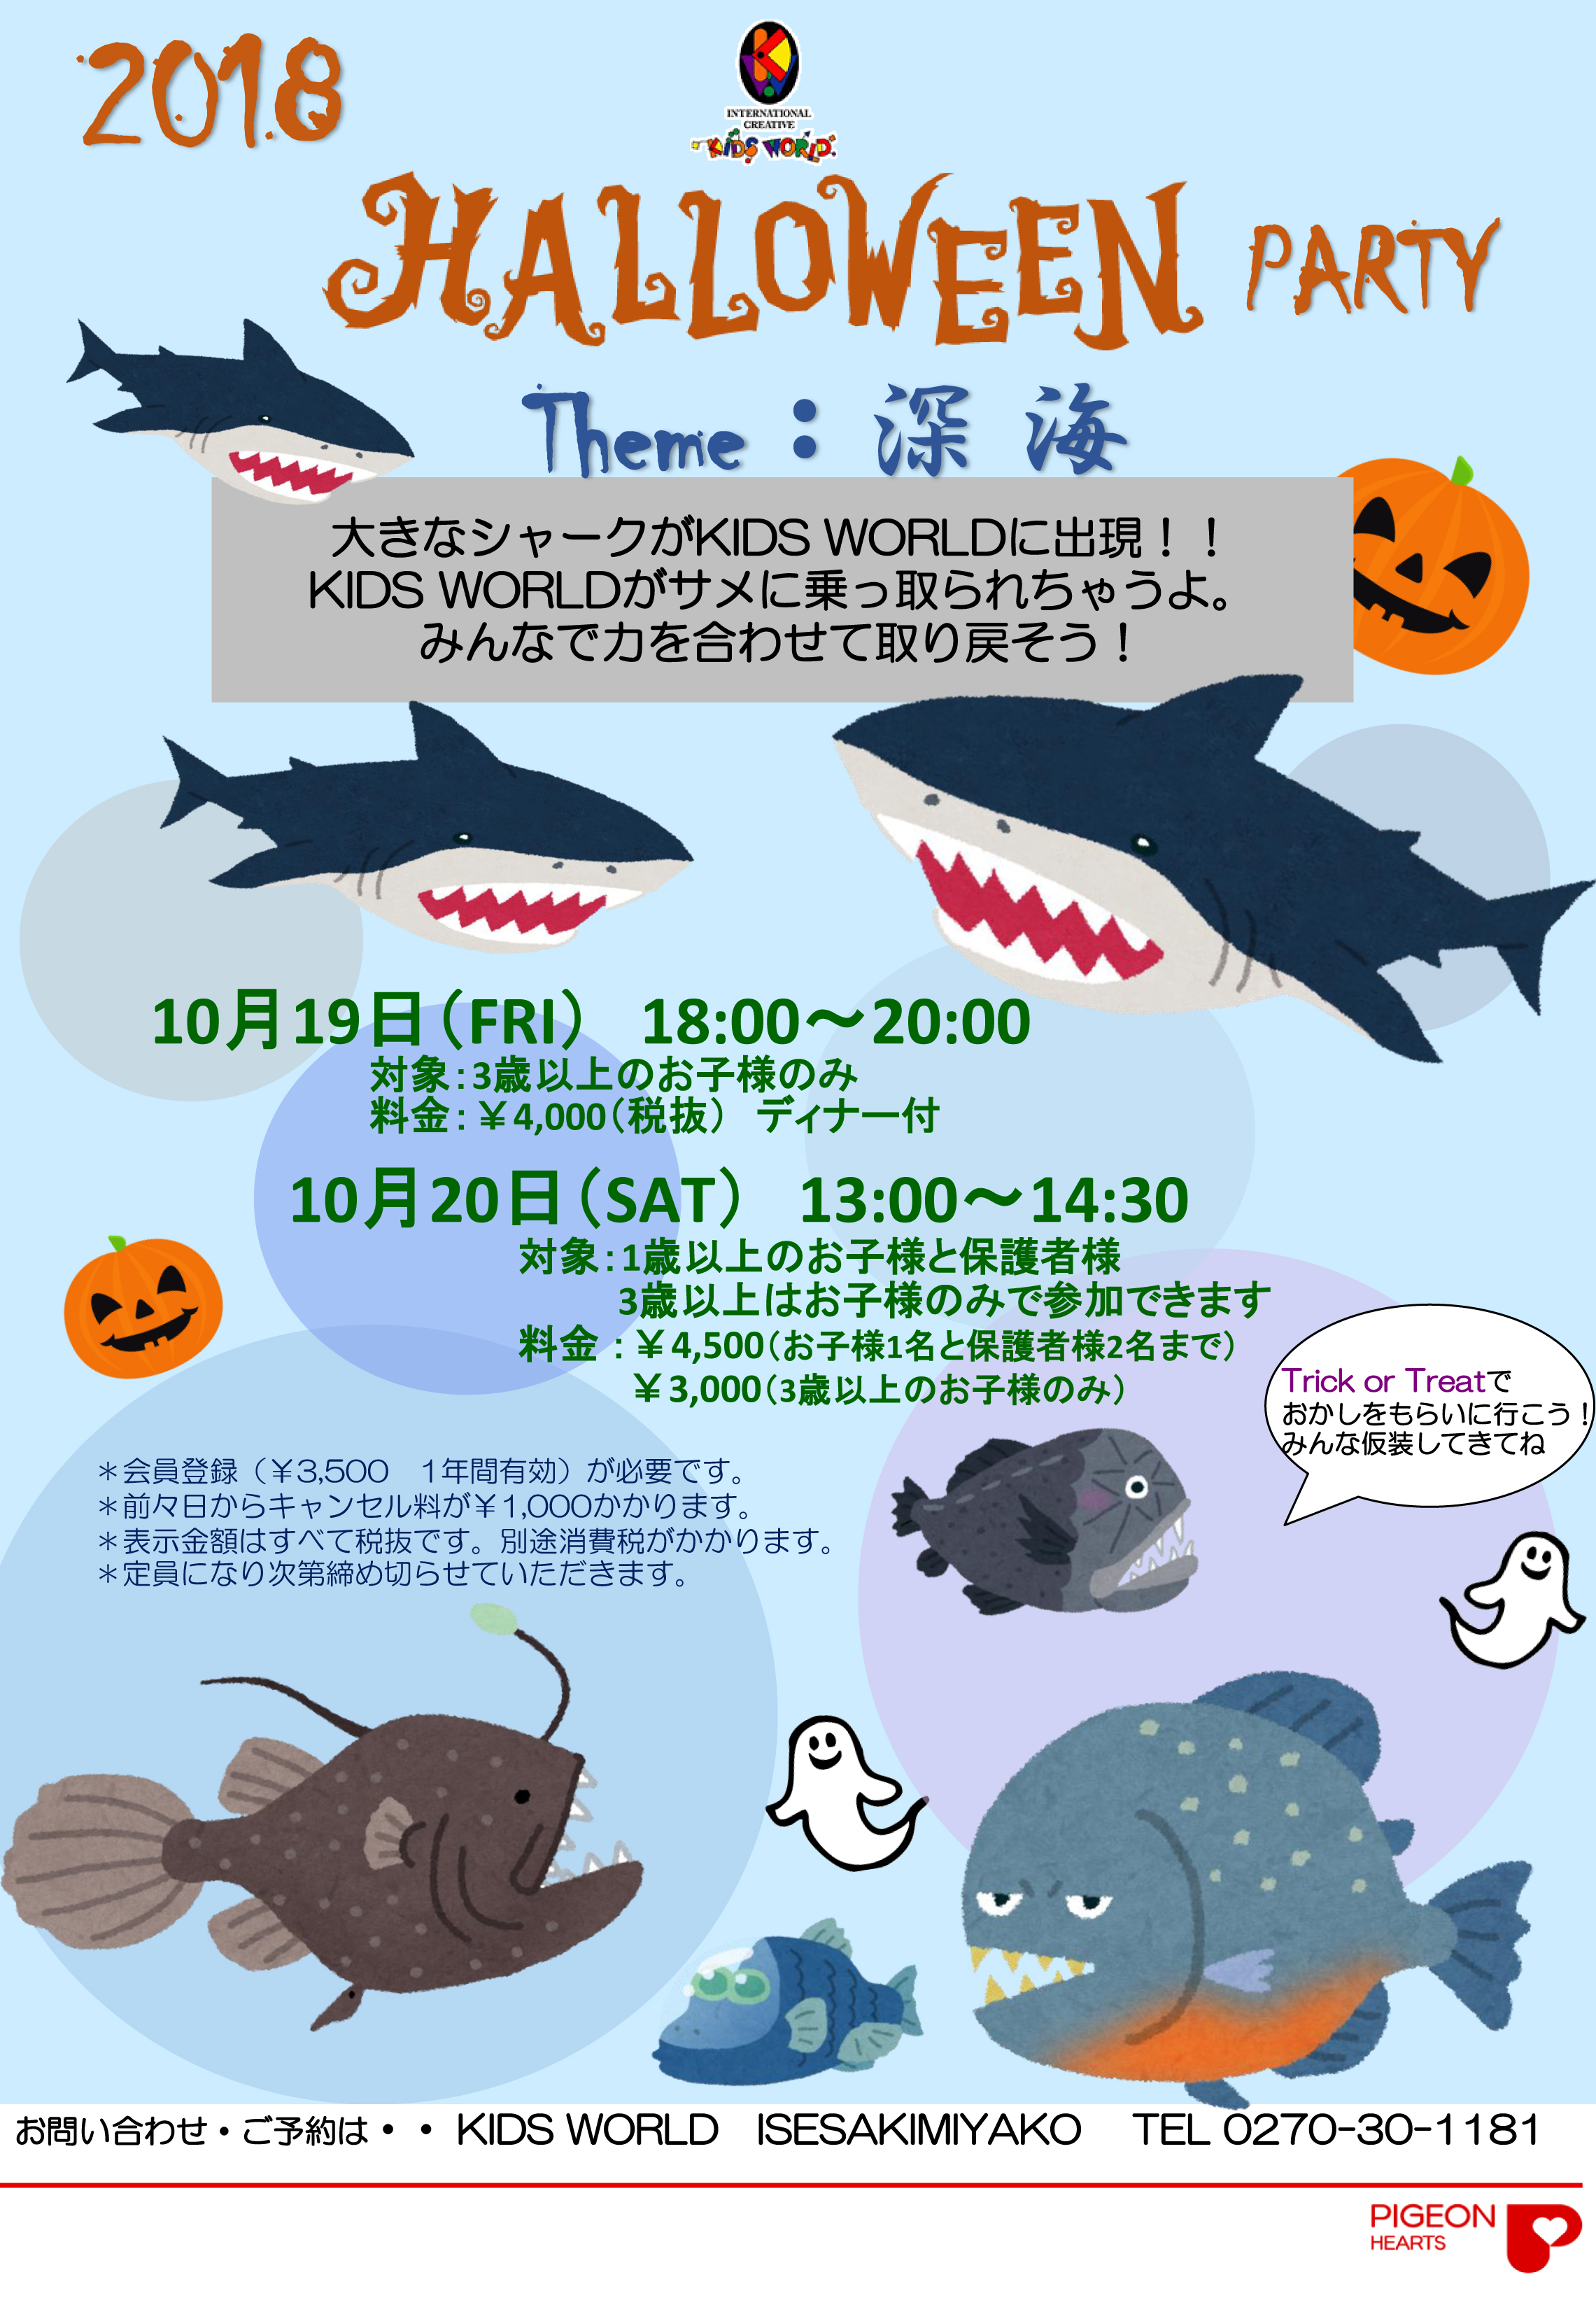 【伊勢崎宮子】HALLOWEEN PARTY2018